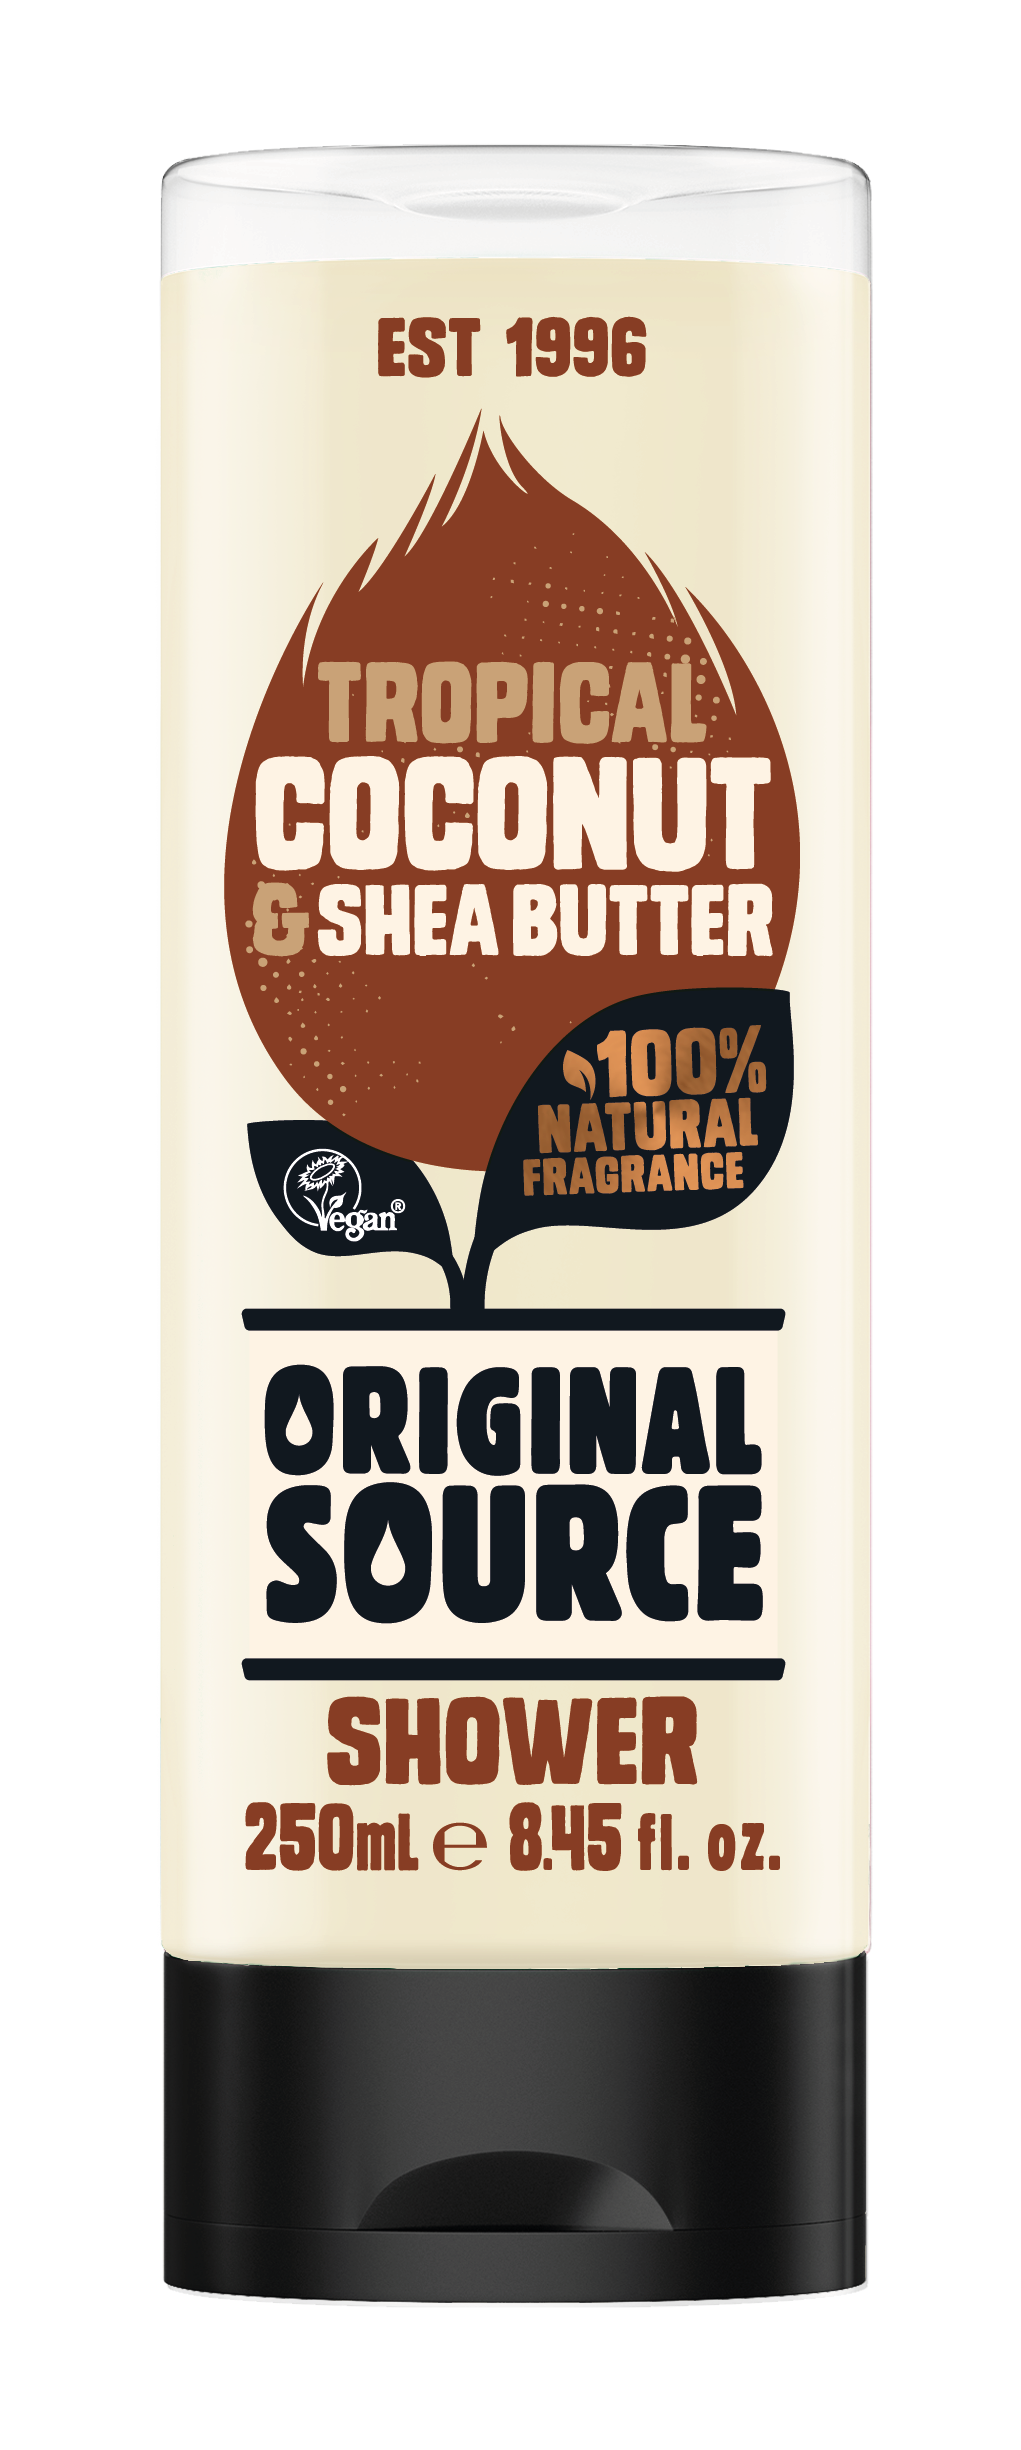 Original Source Coconut & Shea Butter